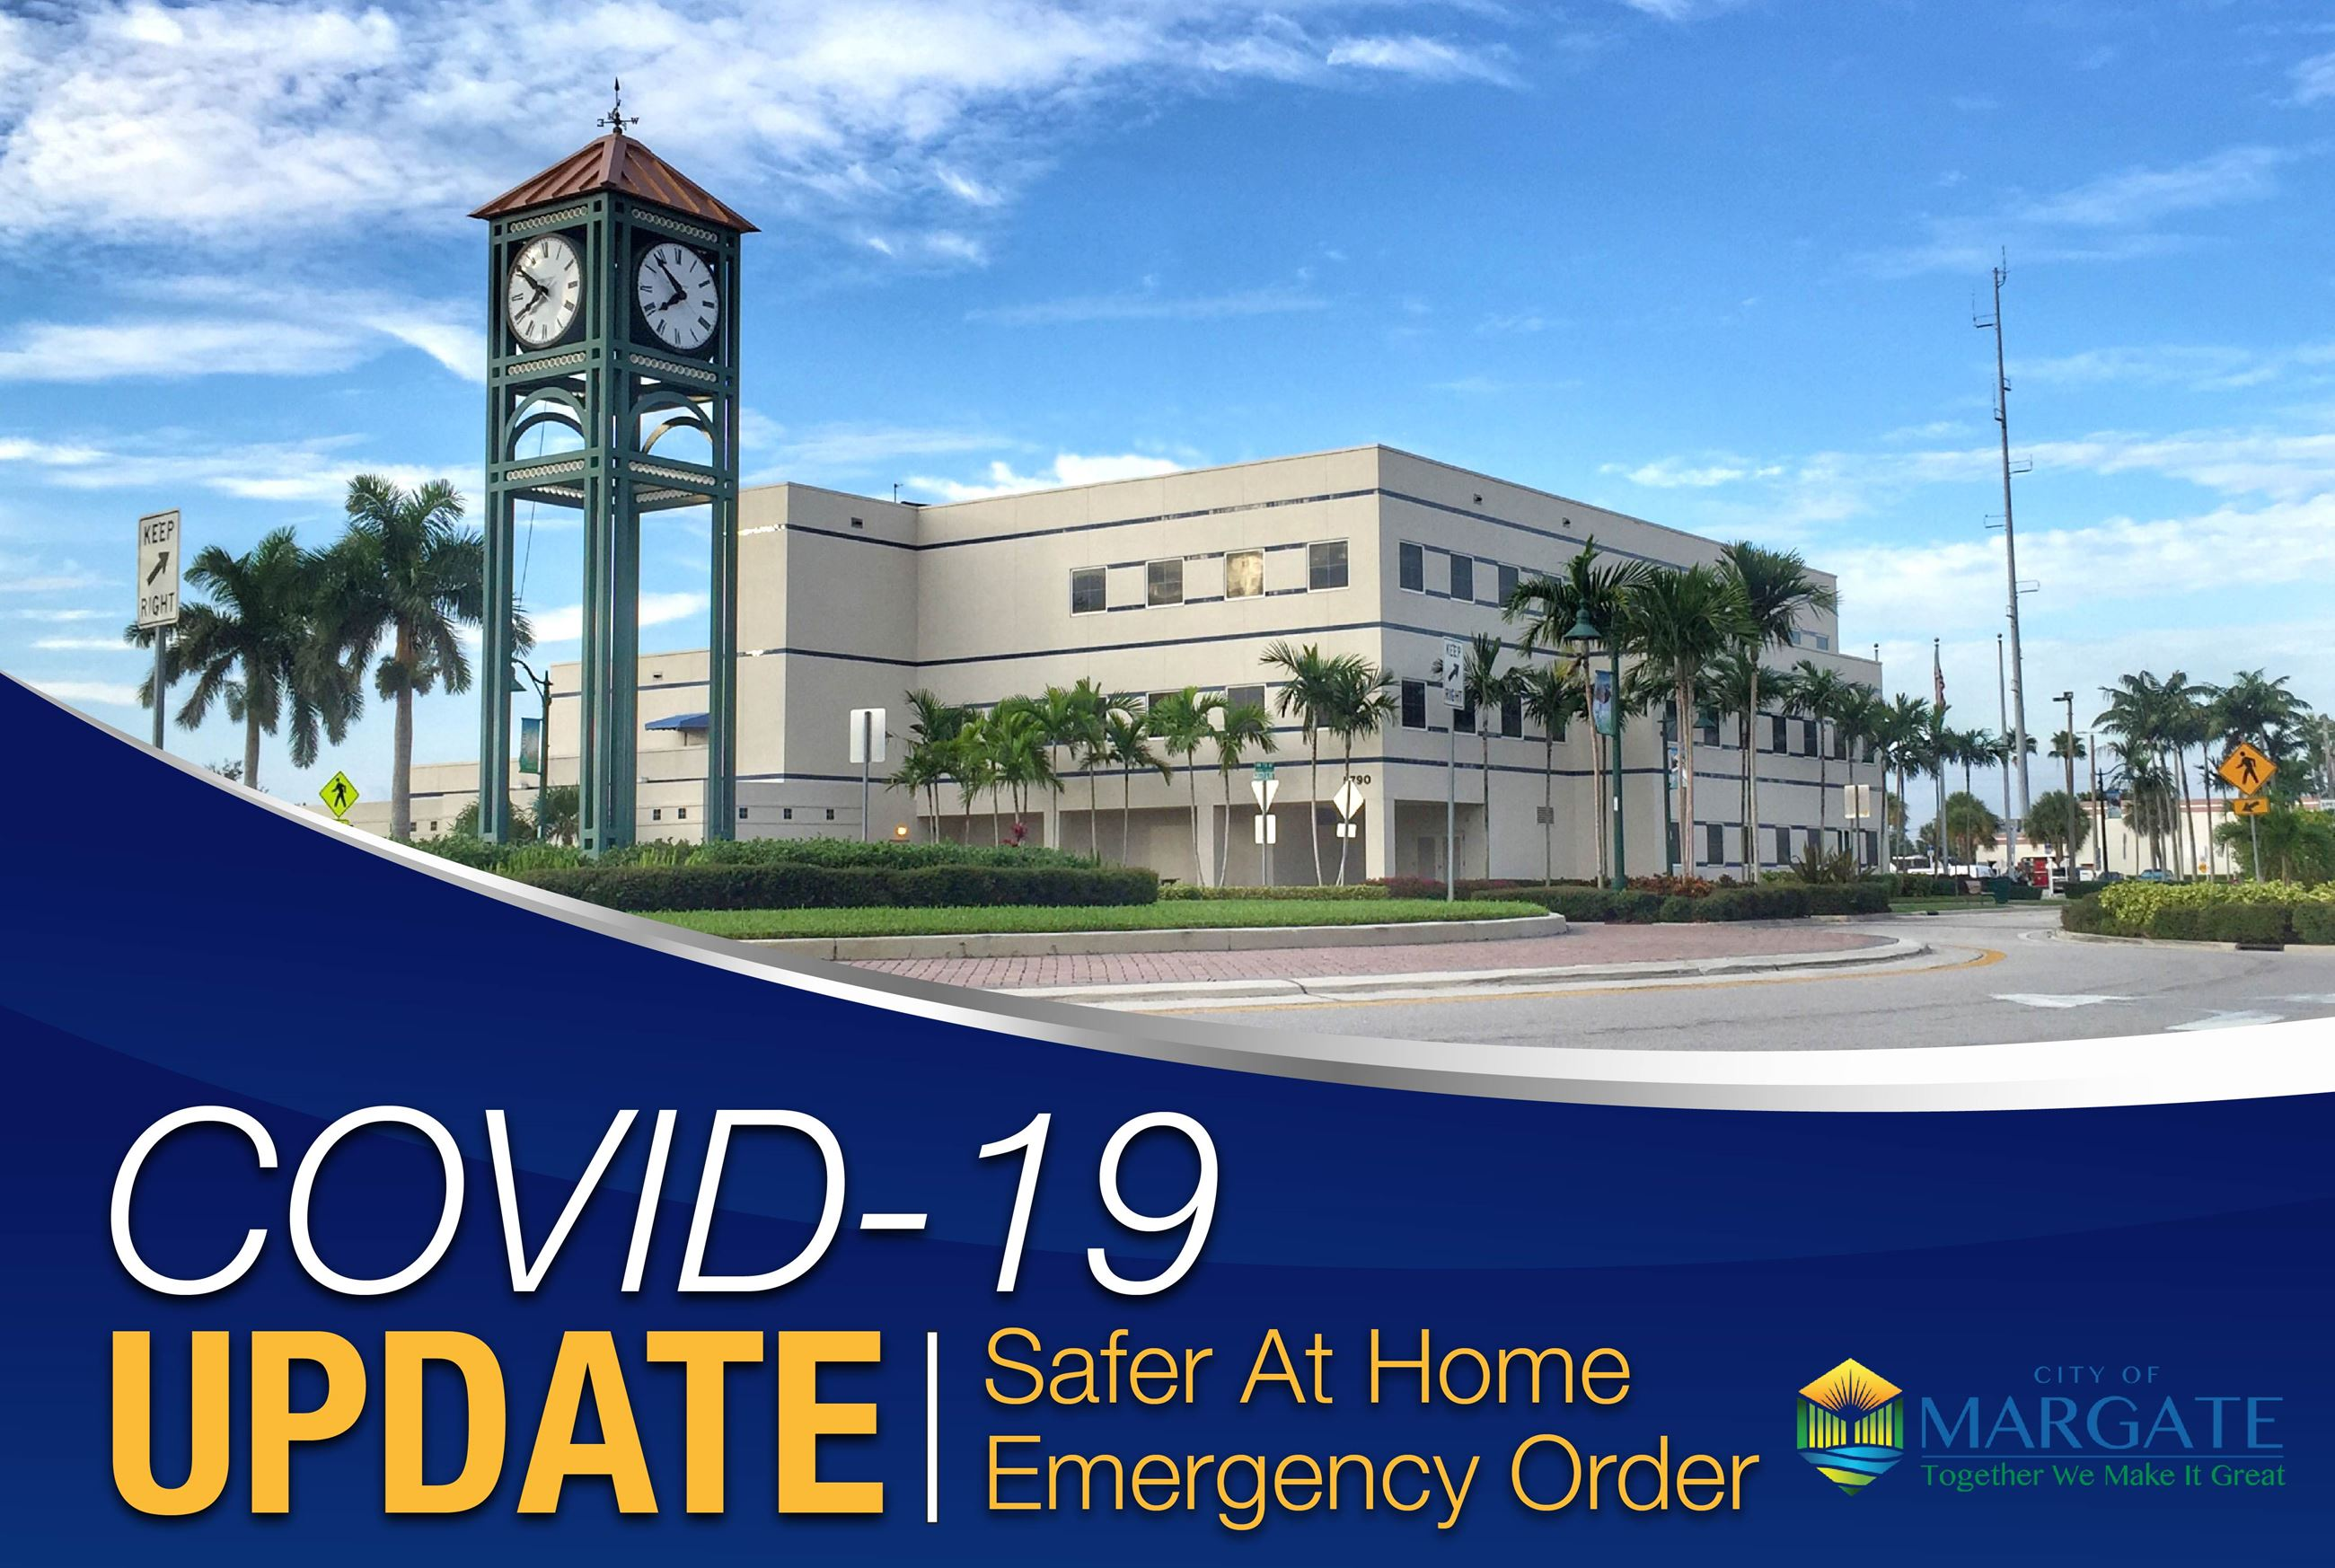 COVID-19 UPDATE-Safer At Home Emergency Order